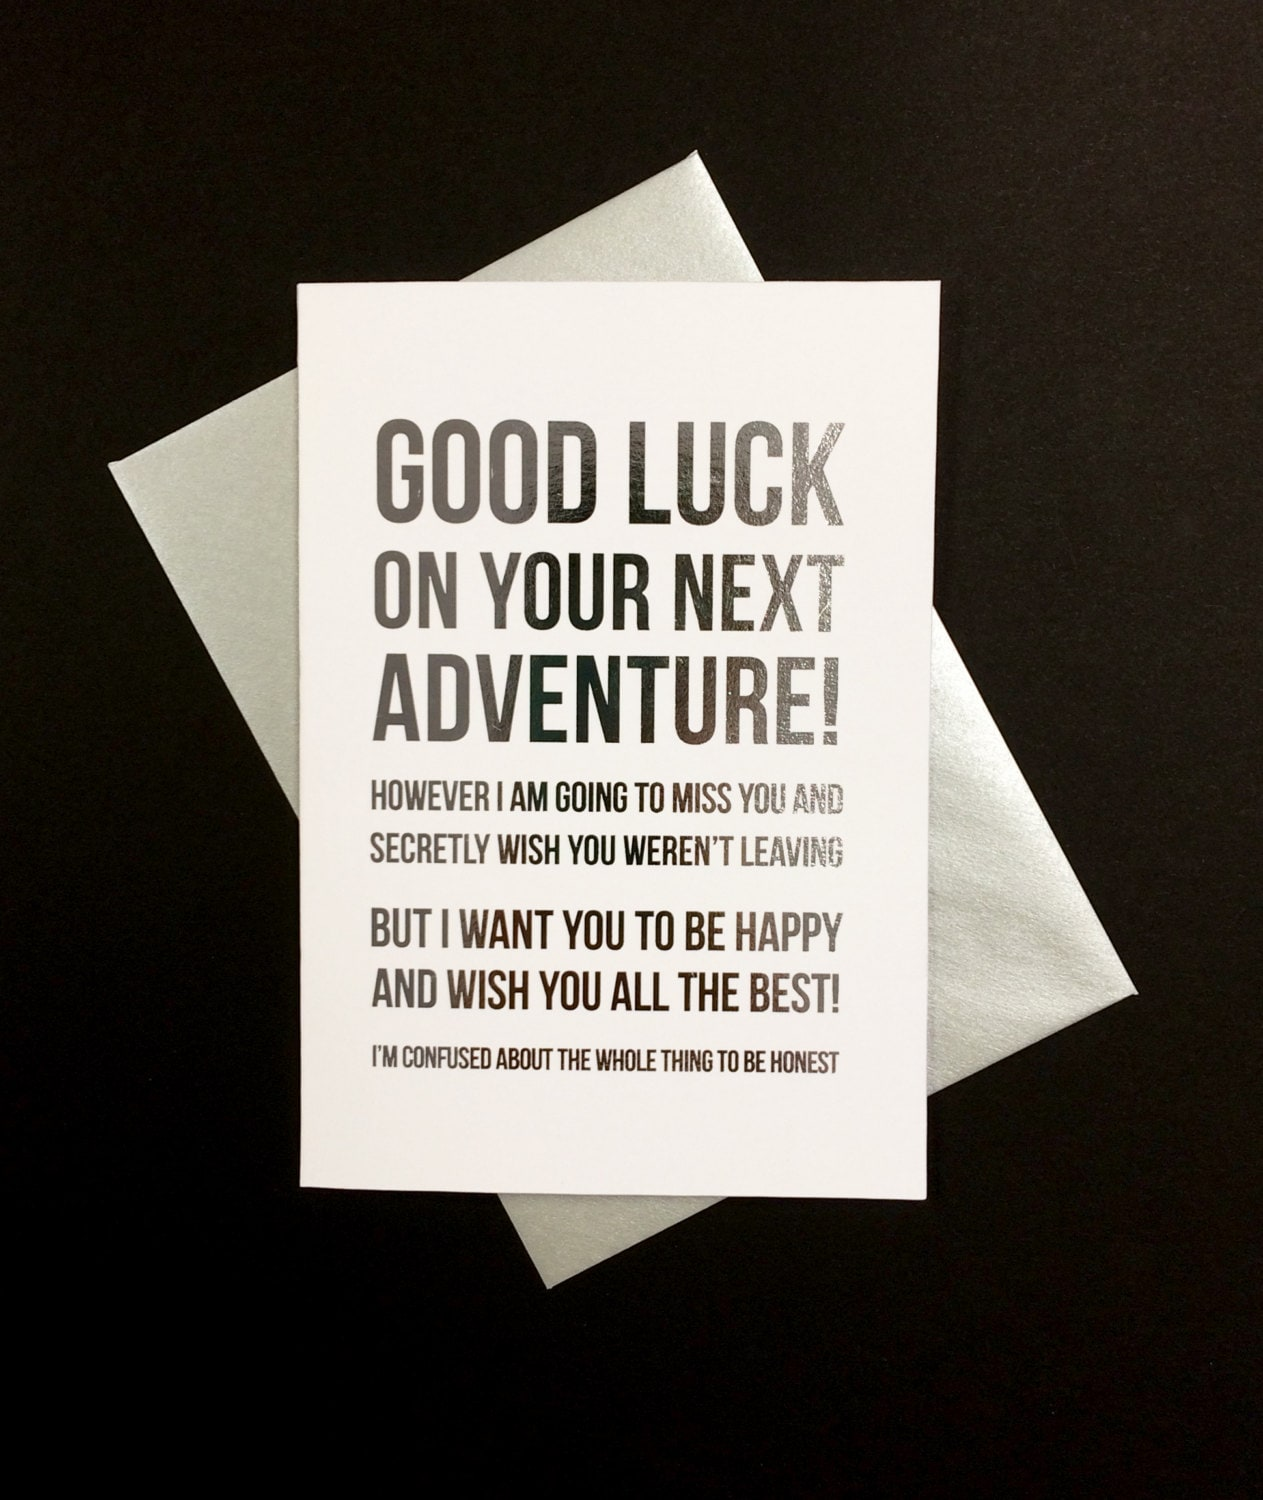 Good luck on your next adventure a6 silver foiled greeting zoom kristyandbryce Image collections